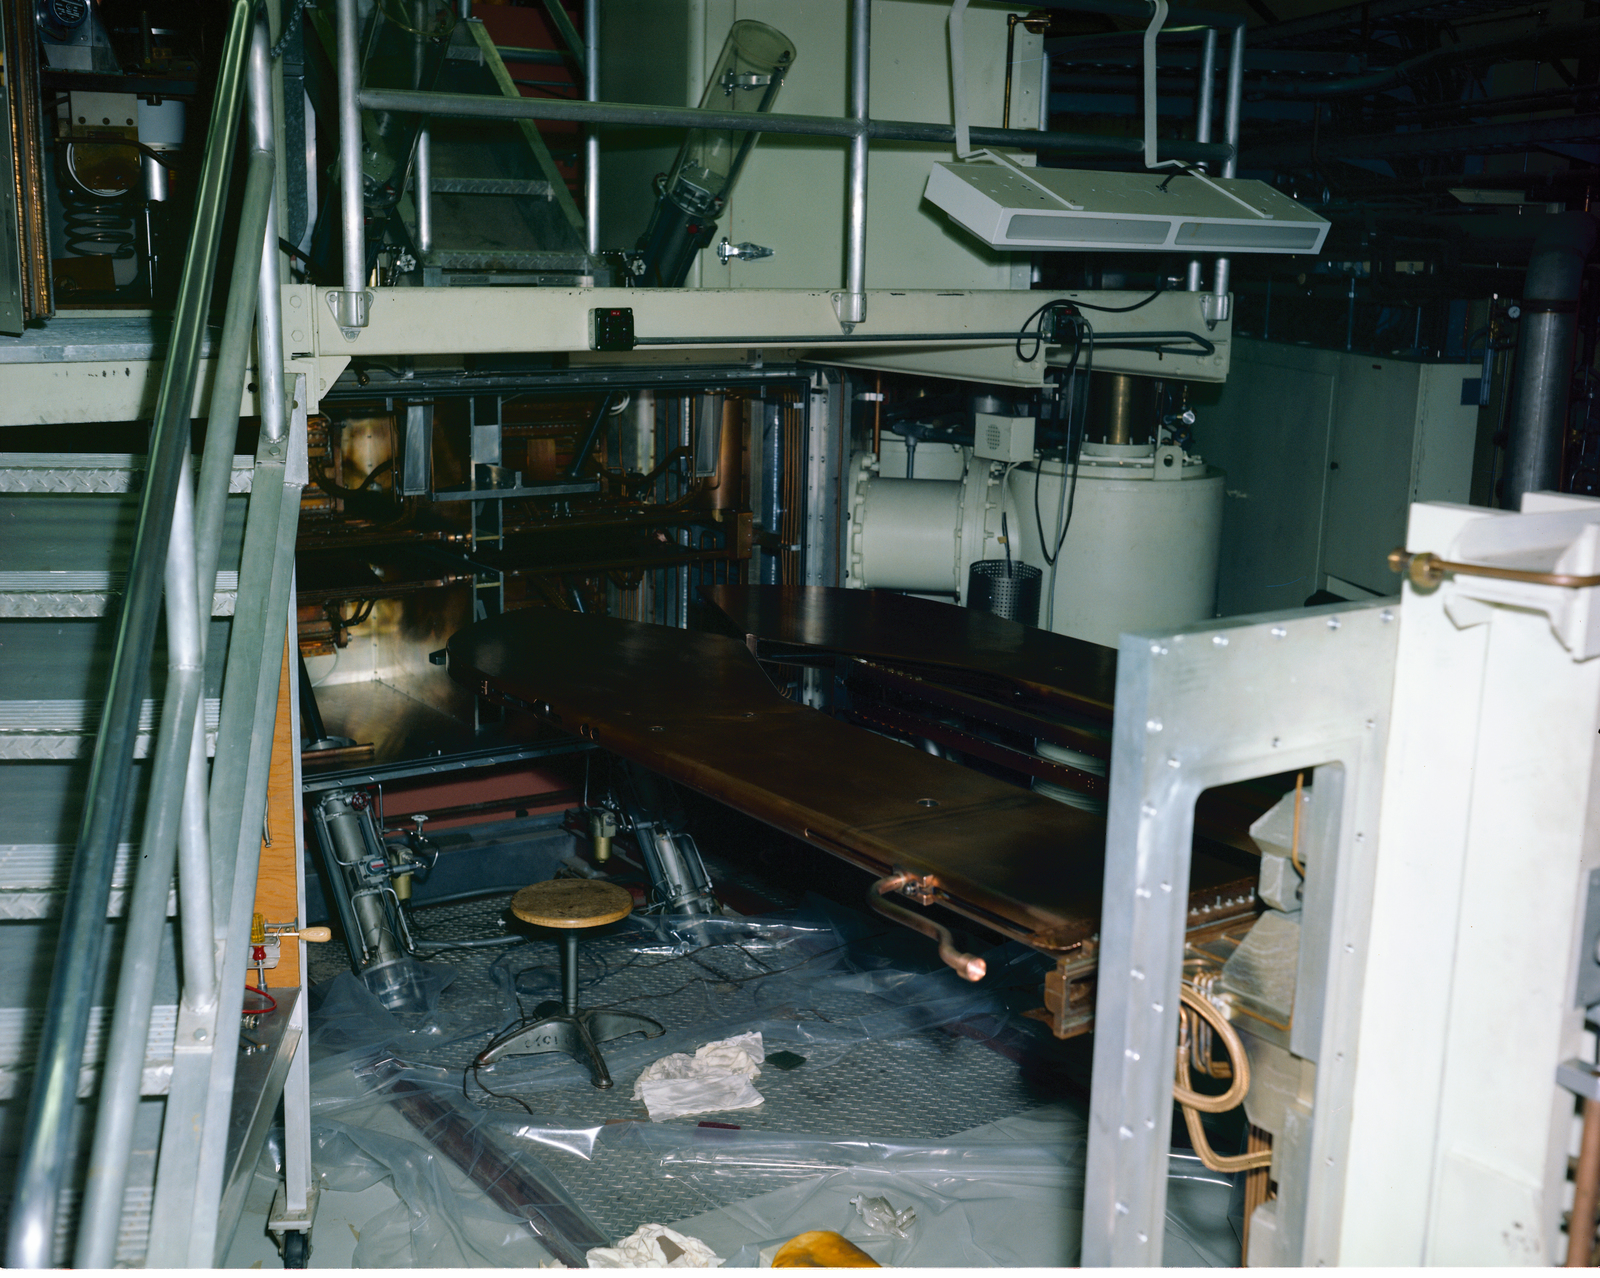 CYCLOTRON AT THE MATERIALS & STRESSES M&S BUILDING - IRON SOURCE - EXPOSED DERS